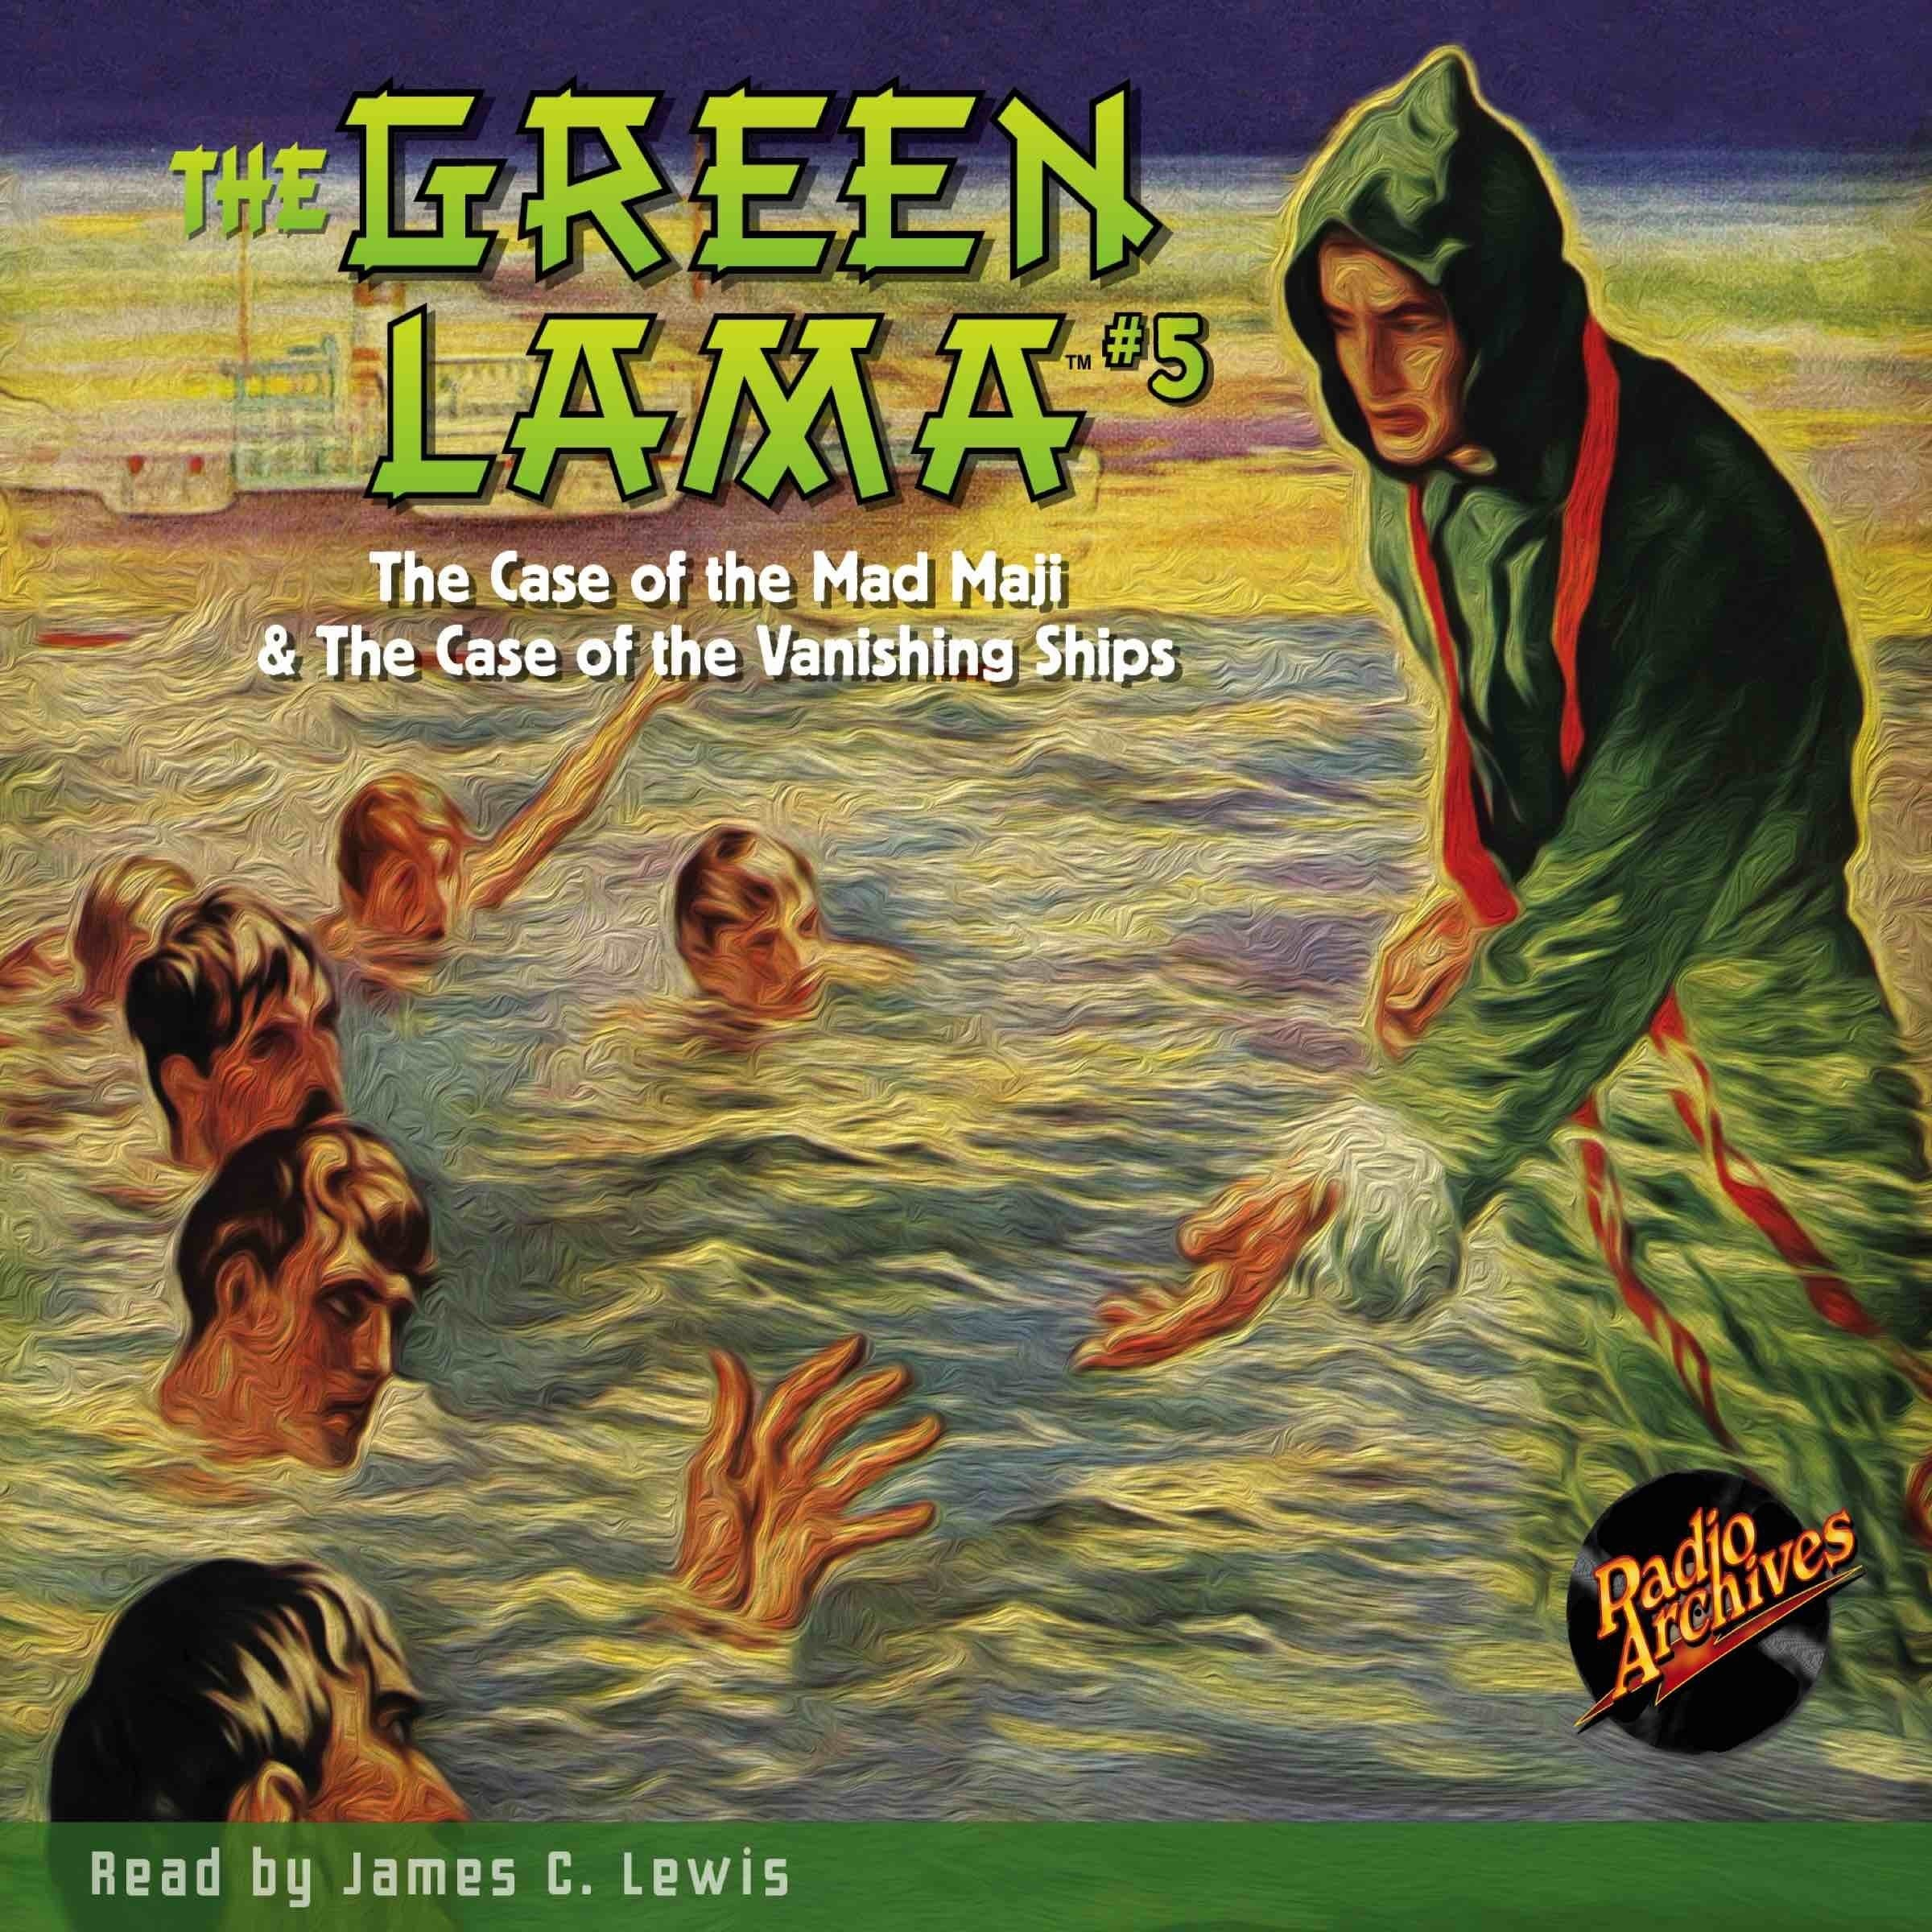 Printable The Green Lama #5: The Case of the Mad Maji & The Case of the Vanishing Ships Audiobook Cover Art